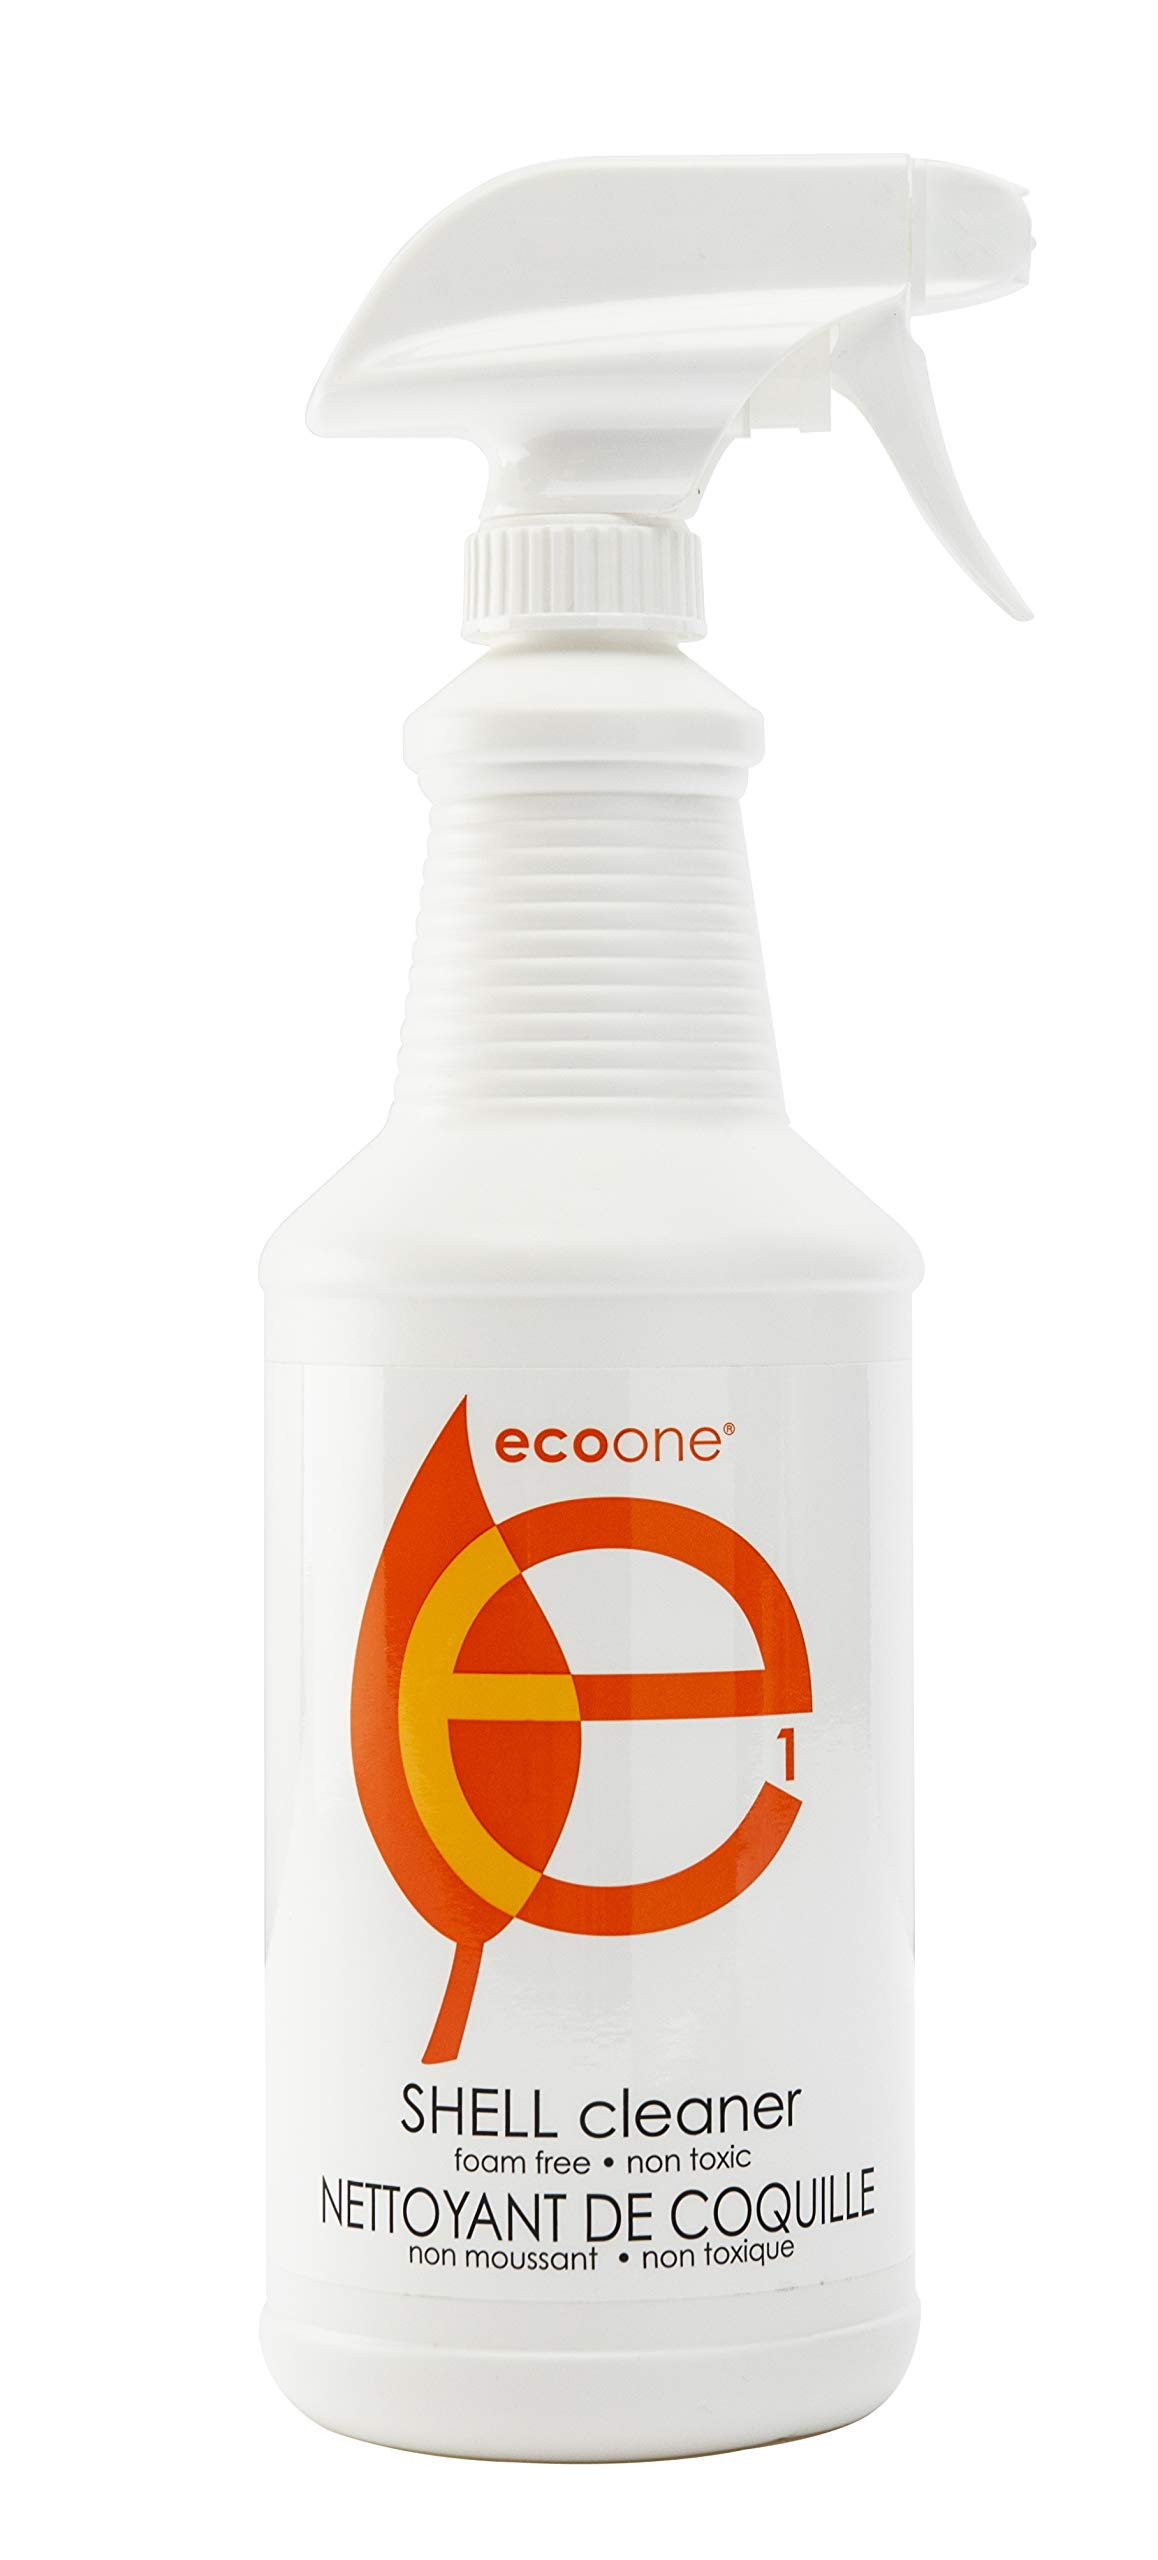 EcoOne | Hot Tub & Spa Shell Cleaner | Natural, Eco Friendly Spa & Pool Care Supplies | Hot Tub Maintenance & Cleaning Chemicals | Foam-Free Cleanser | 32 oz Spray Bottle